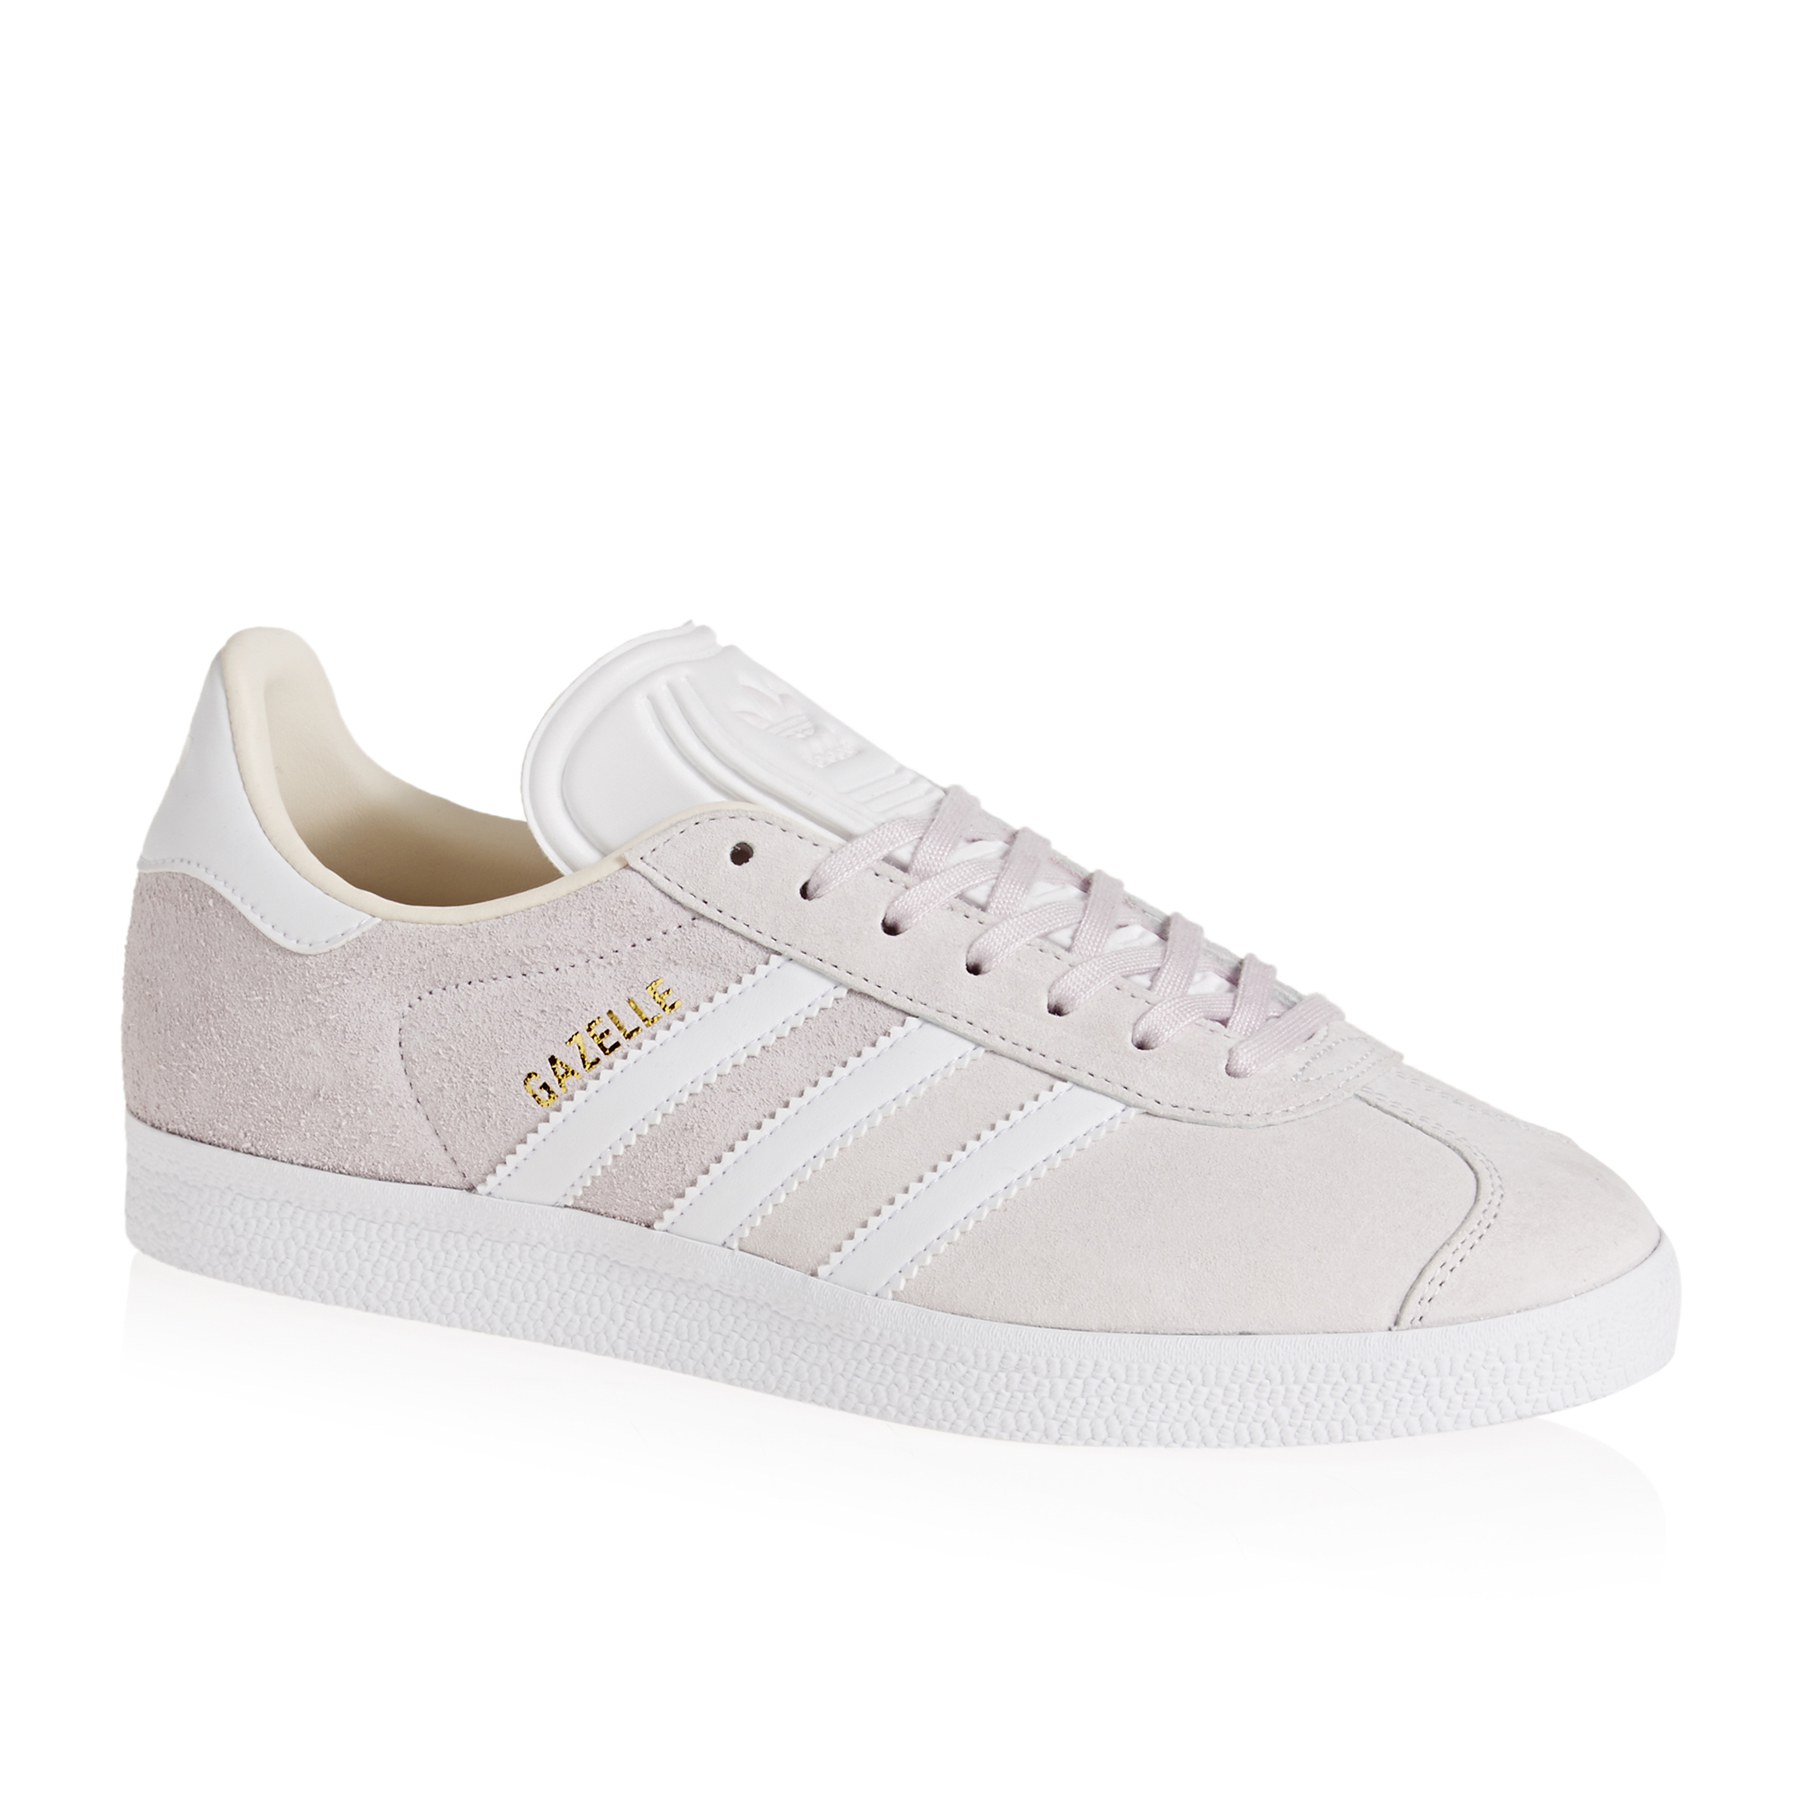 Adidas Originals Gazelle Womens Shoes | Free Delivery Options